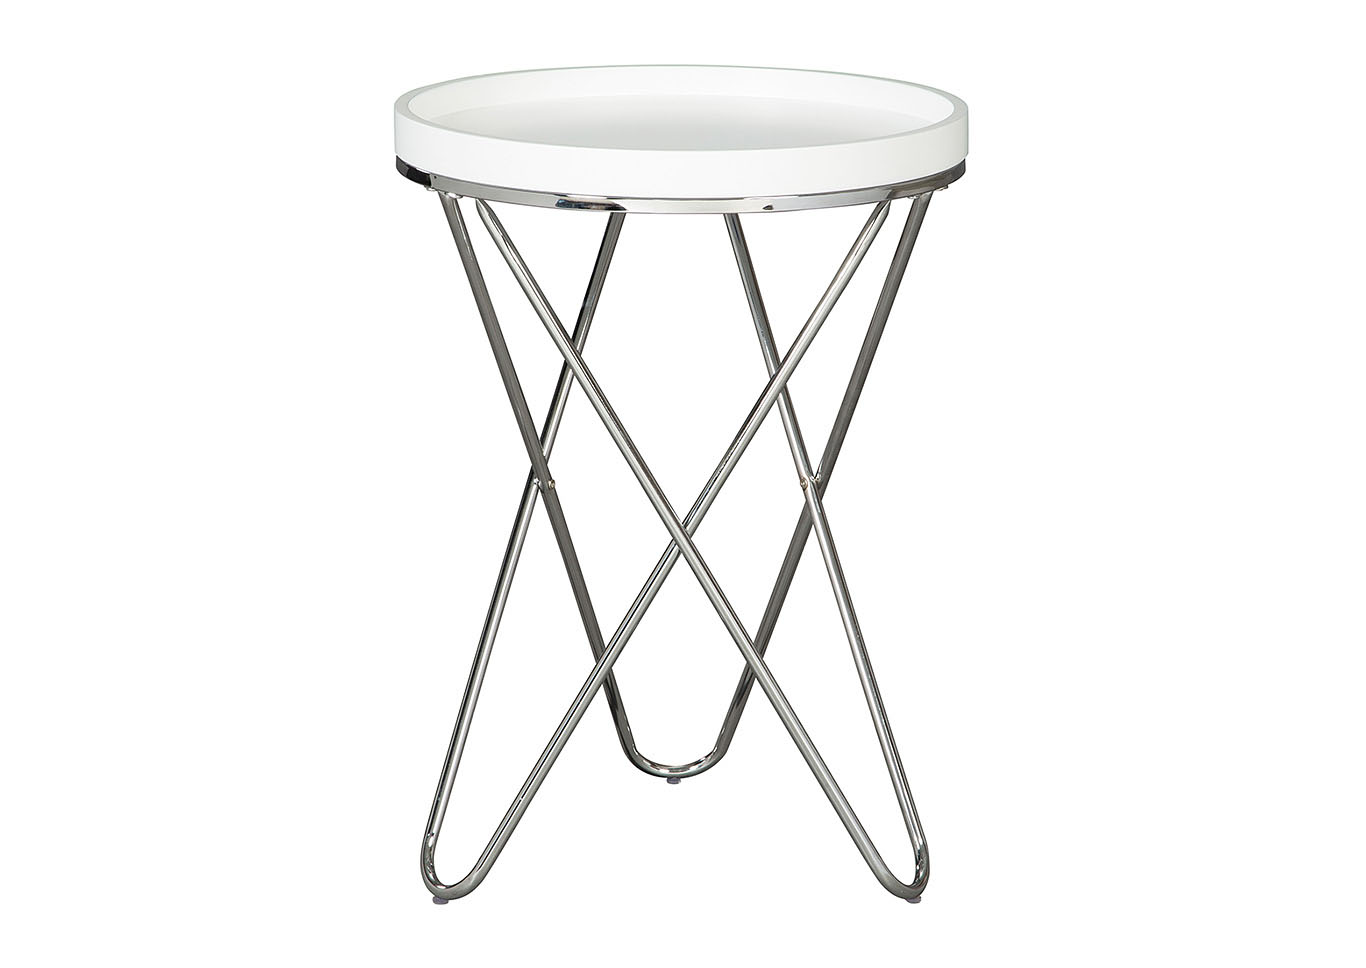 white round end table accent tables small living room leather full size black windsor chairs inexpensive for triangle drawer chest gold coffee simple home decoration coastal